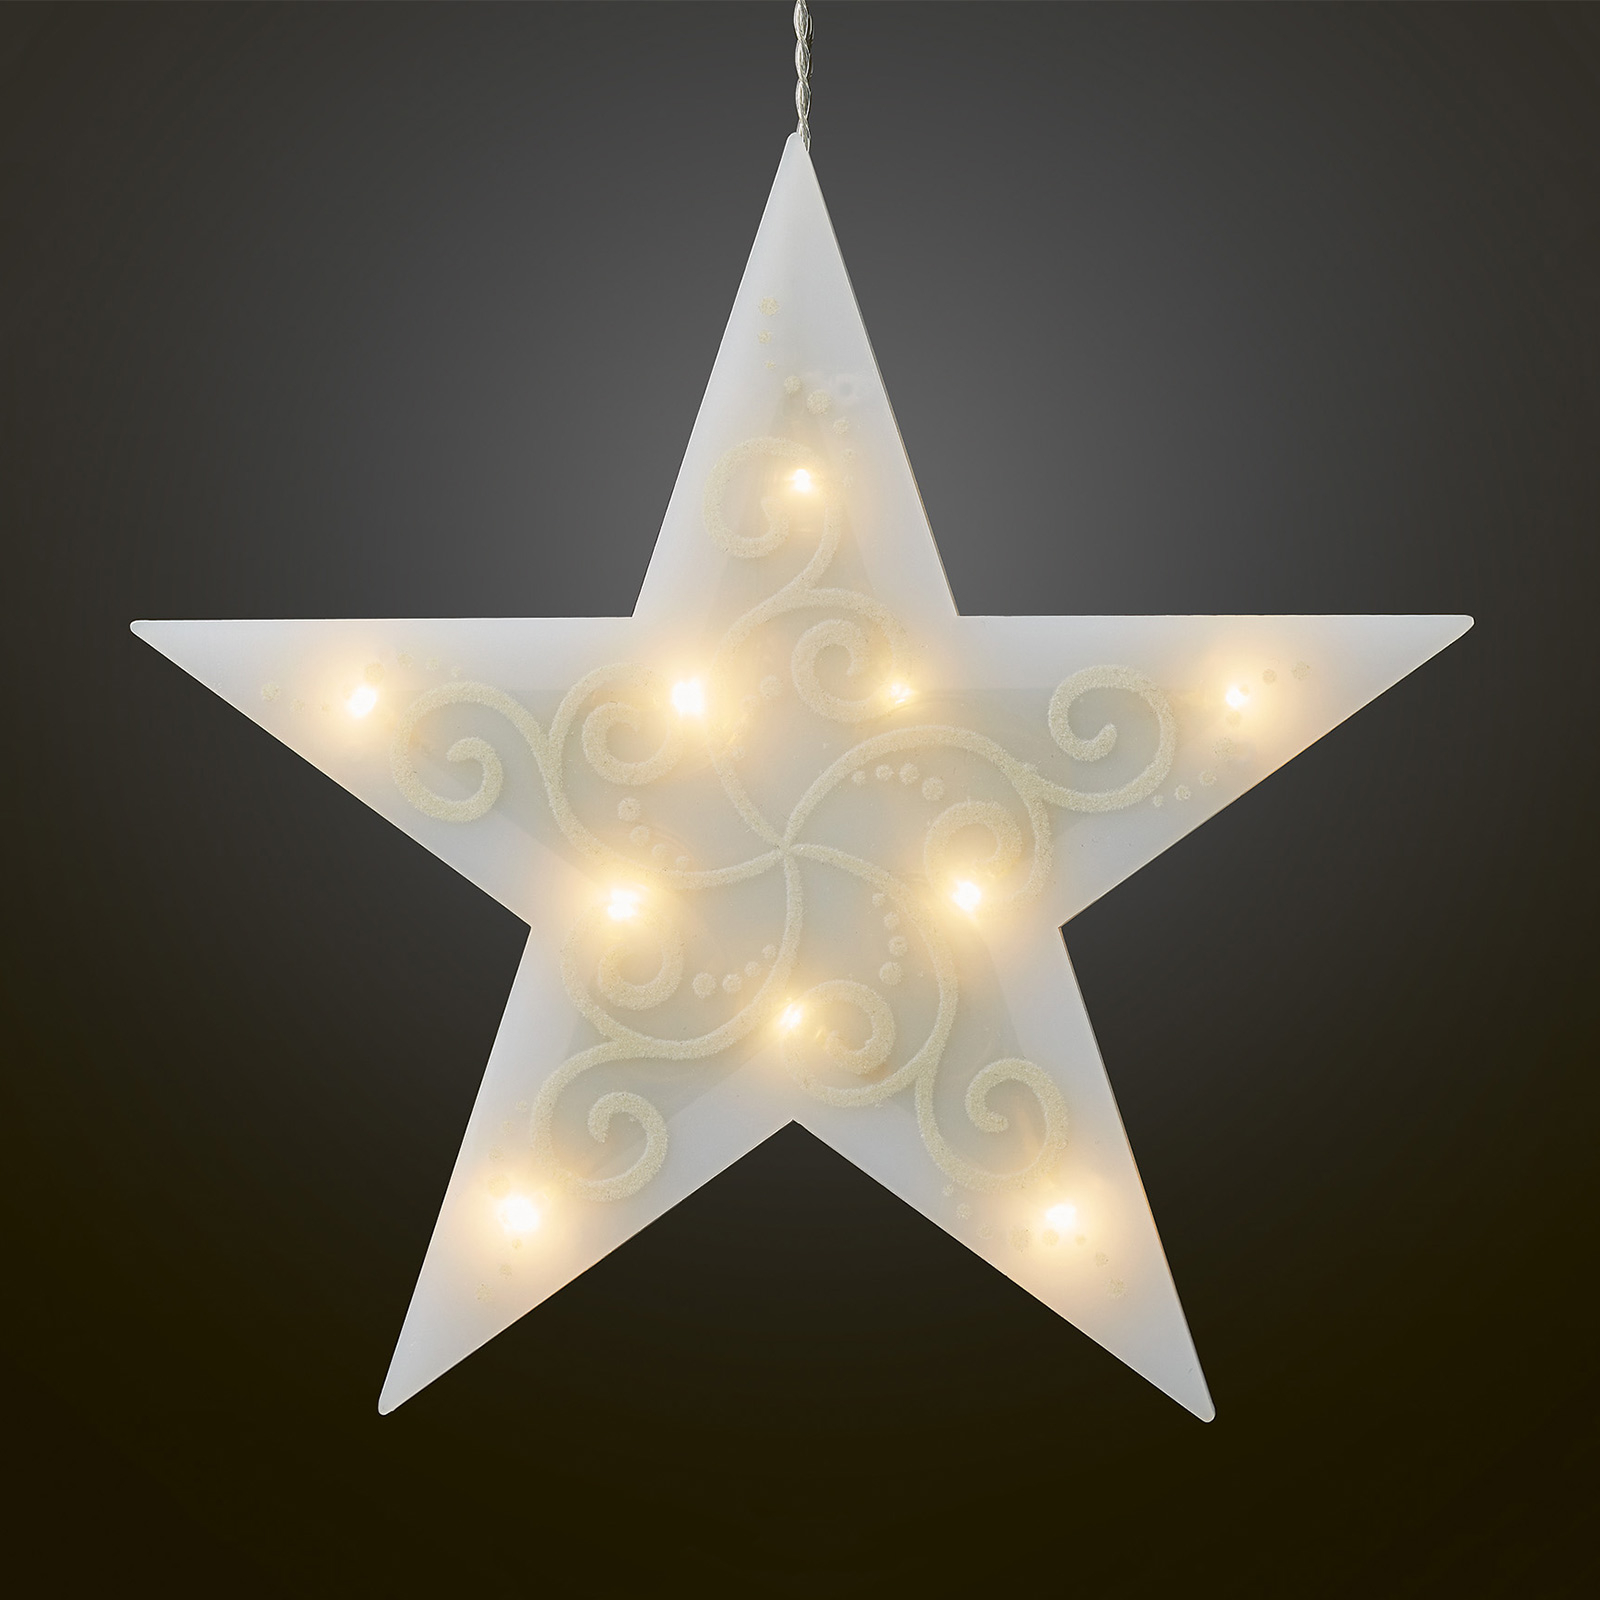 LED decorative star 5-pointed, white string lights_4523568_1